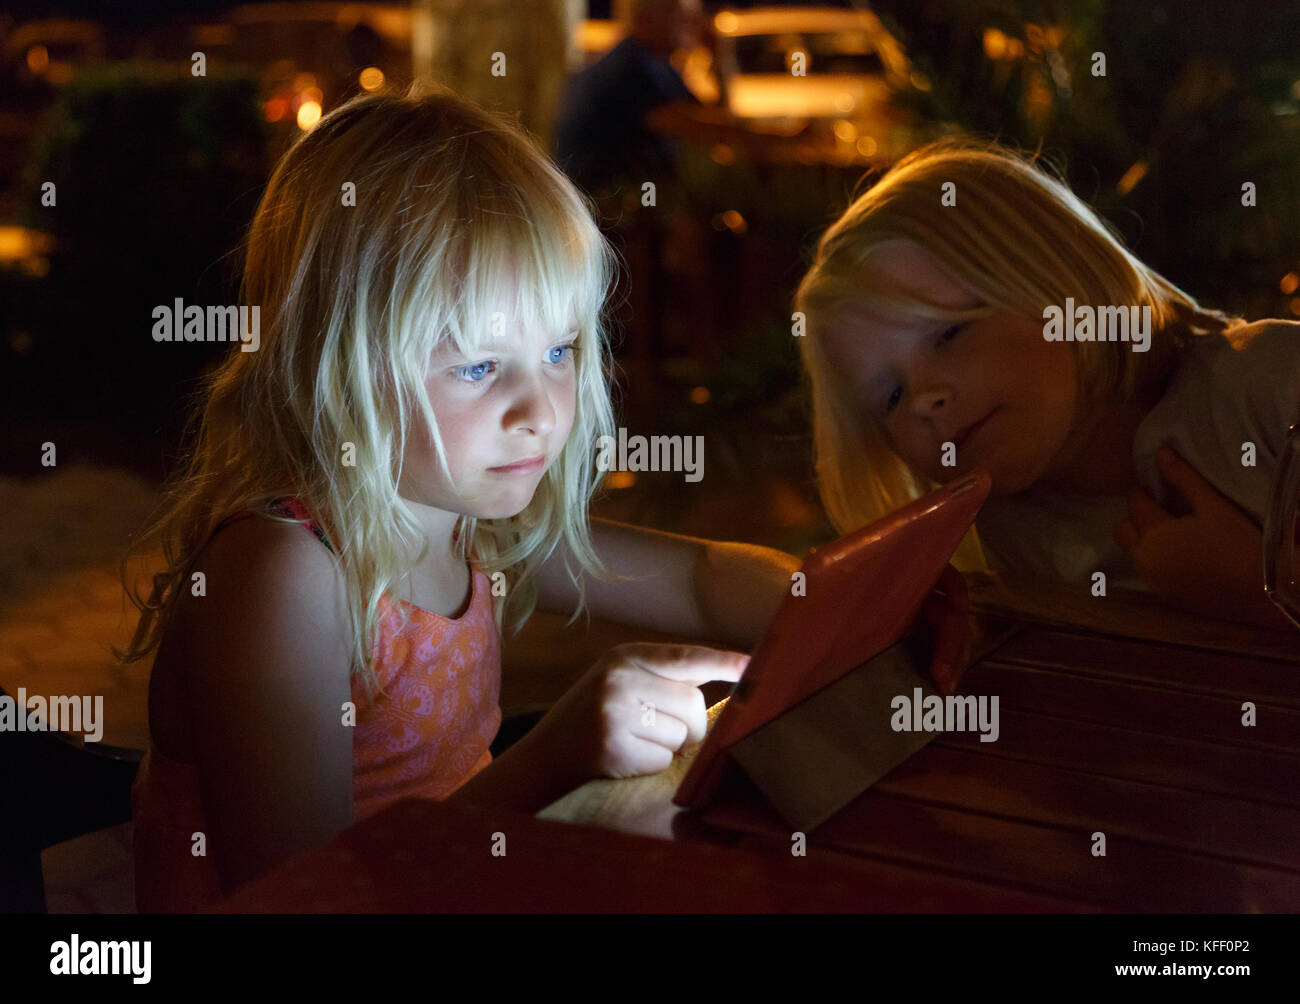 Girl tapping on here Ipad outside on a restaurant in evening when dark.  Here face is lit by the screen. Her friend - Stock Image